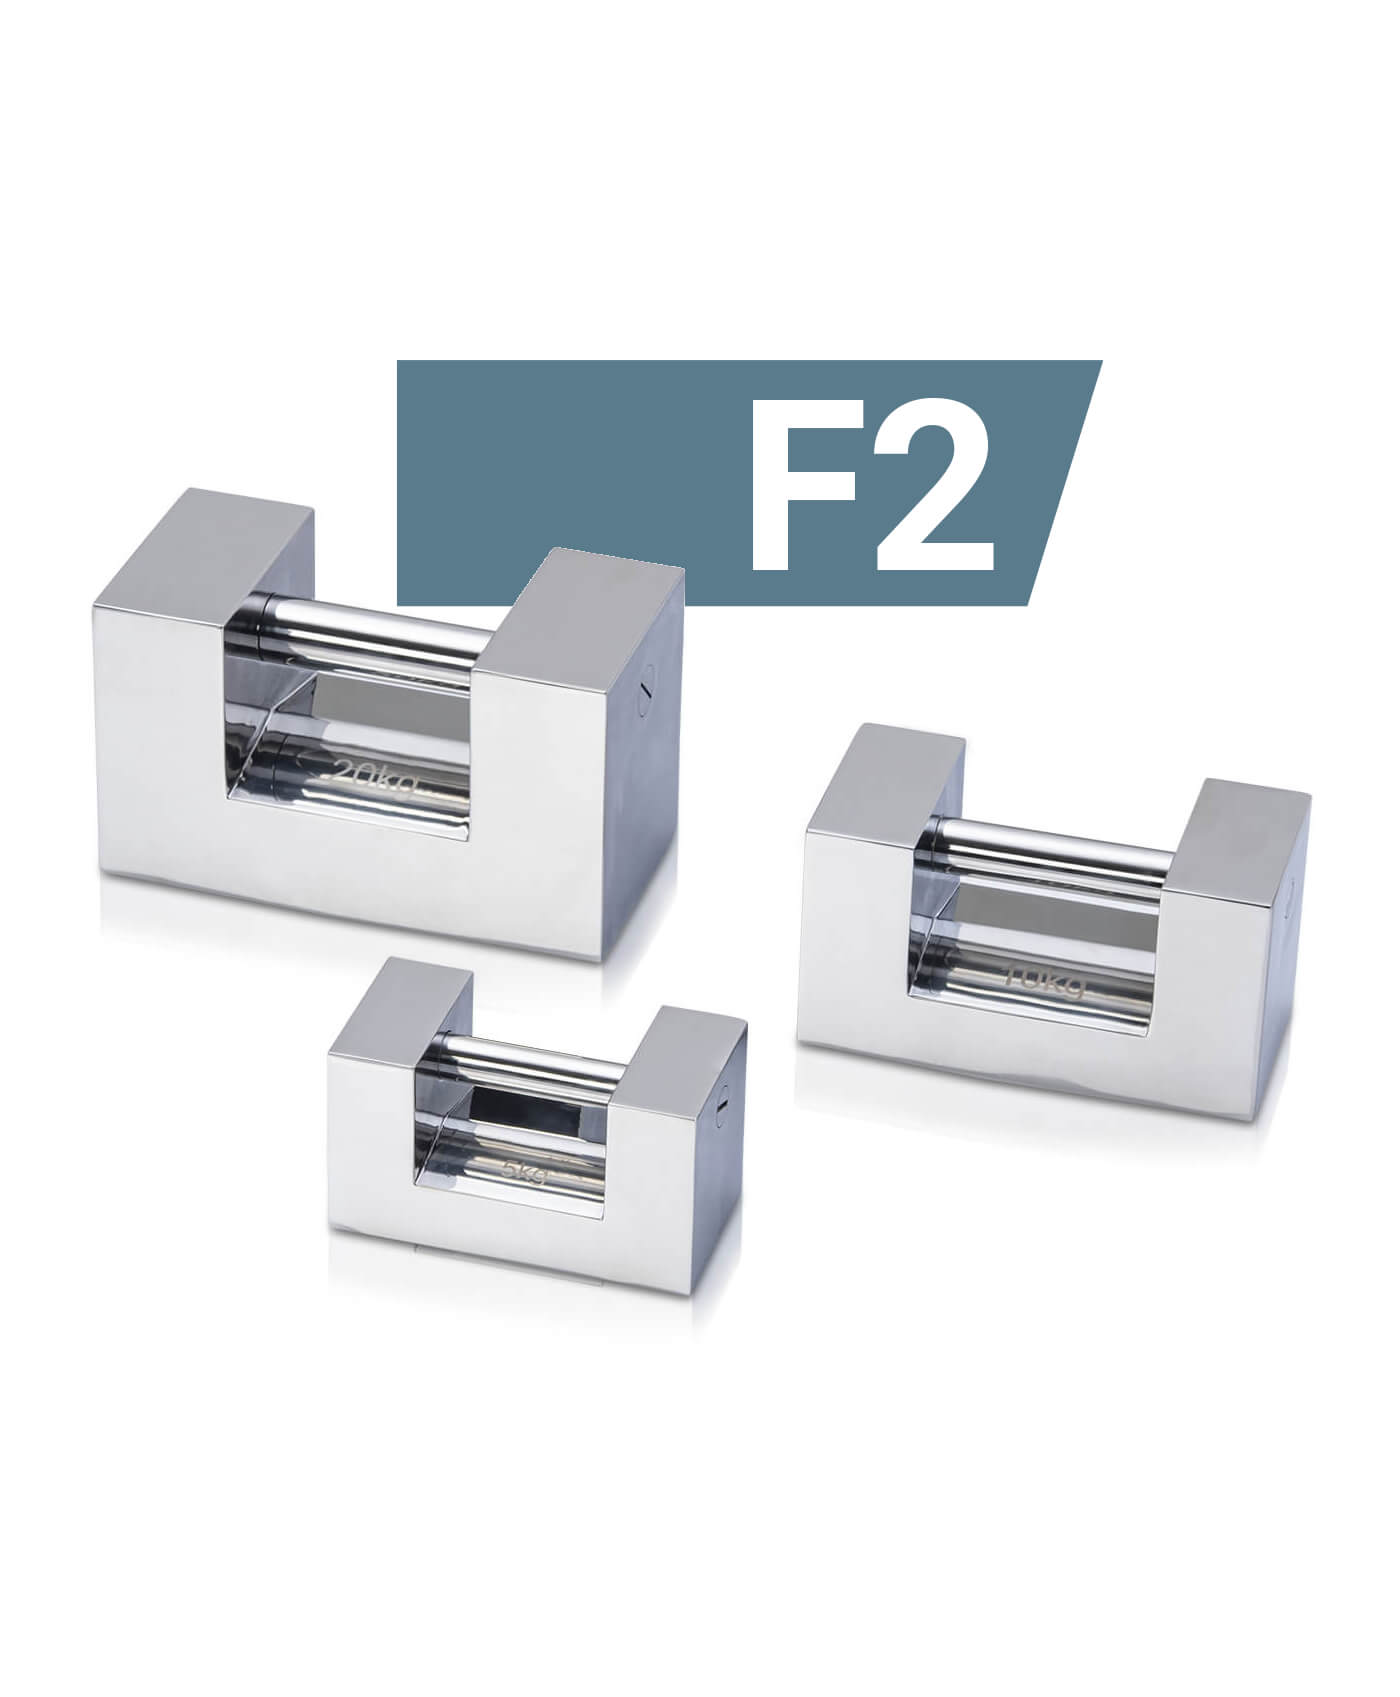 F2 Stainless steel block weights